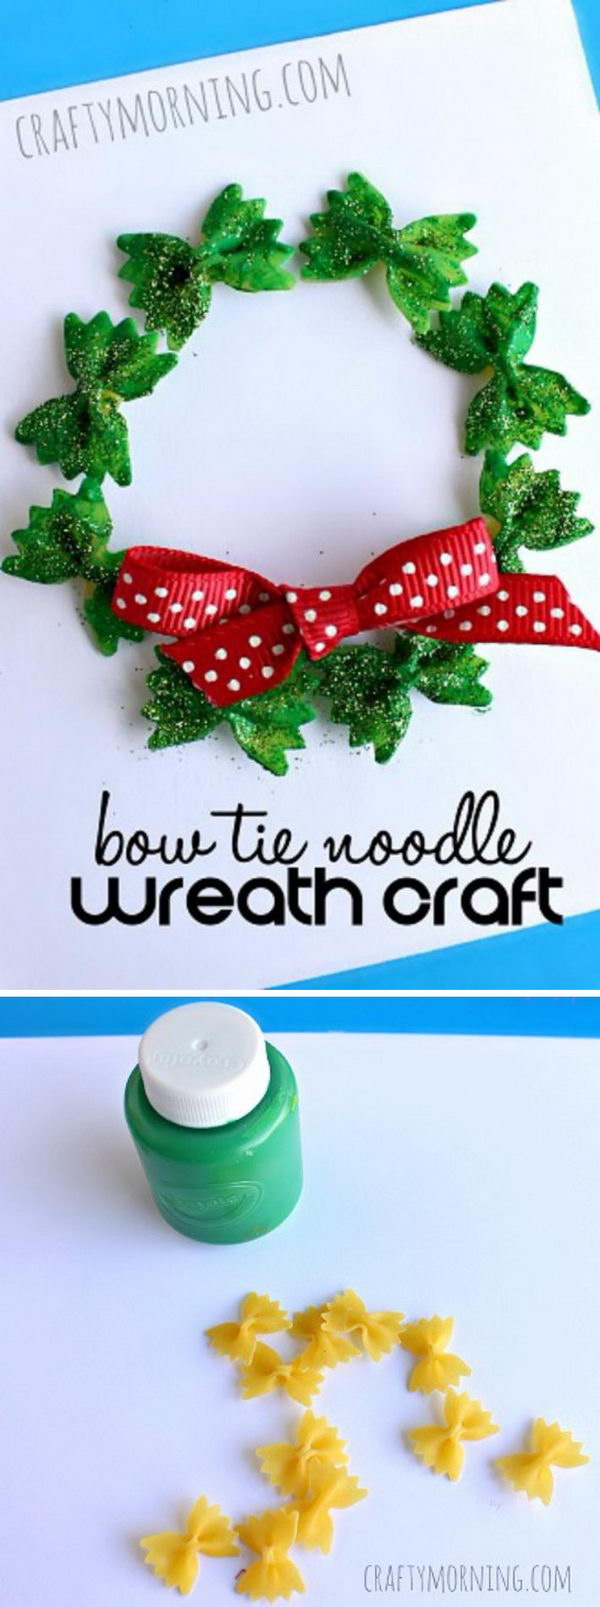 Bow Tie Noodle Wreath Craft.